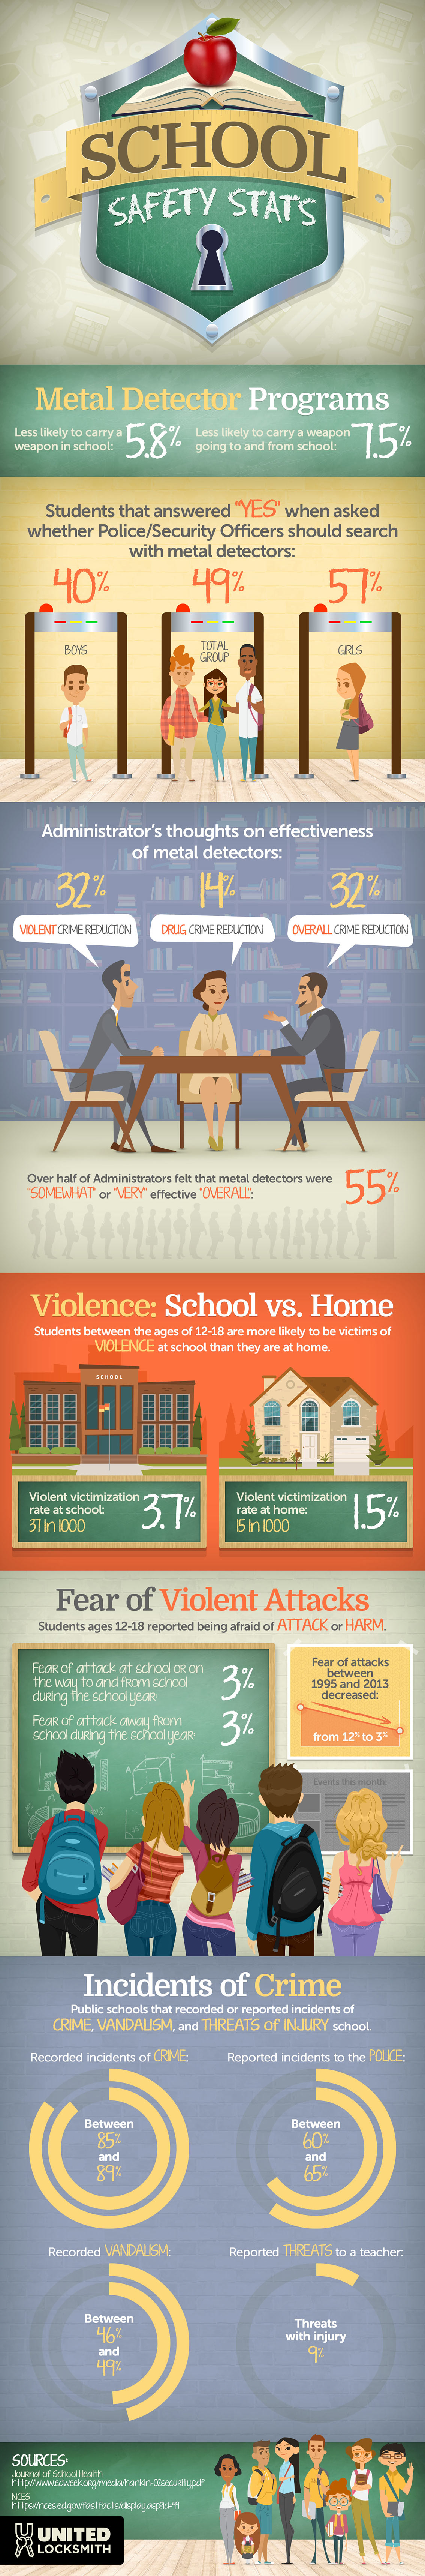 Violence in Schools Statistics Infographic